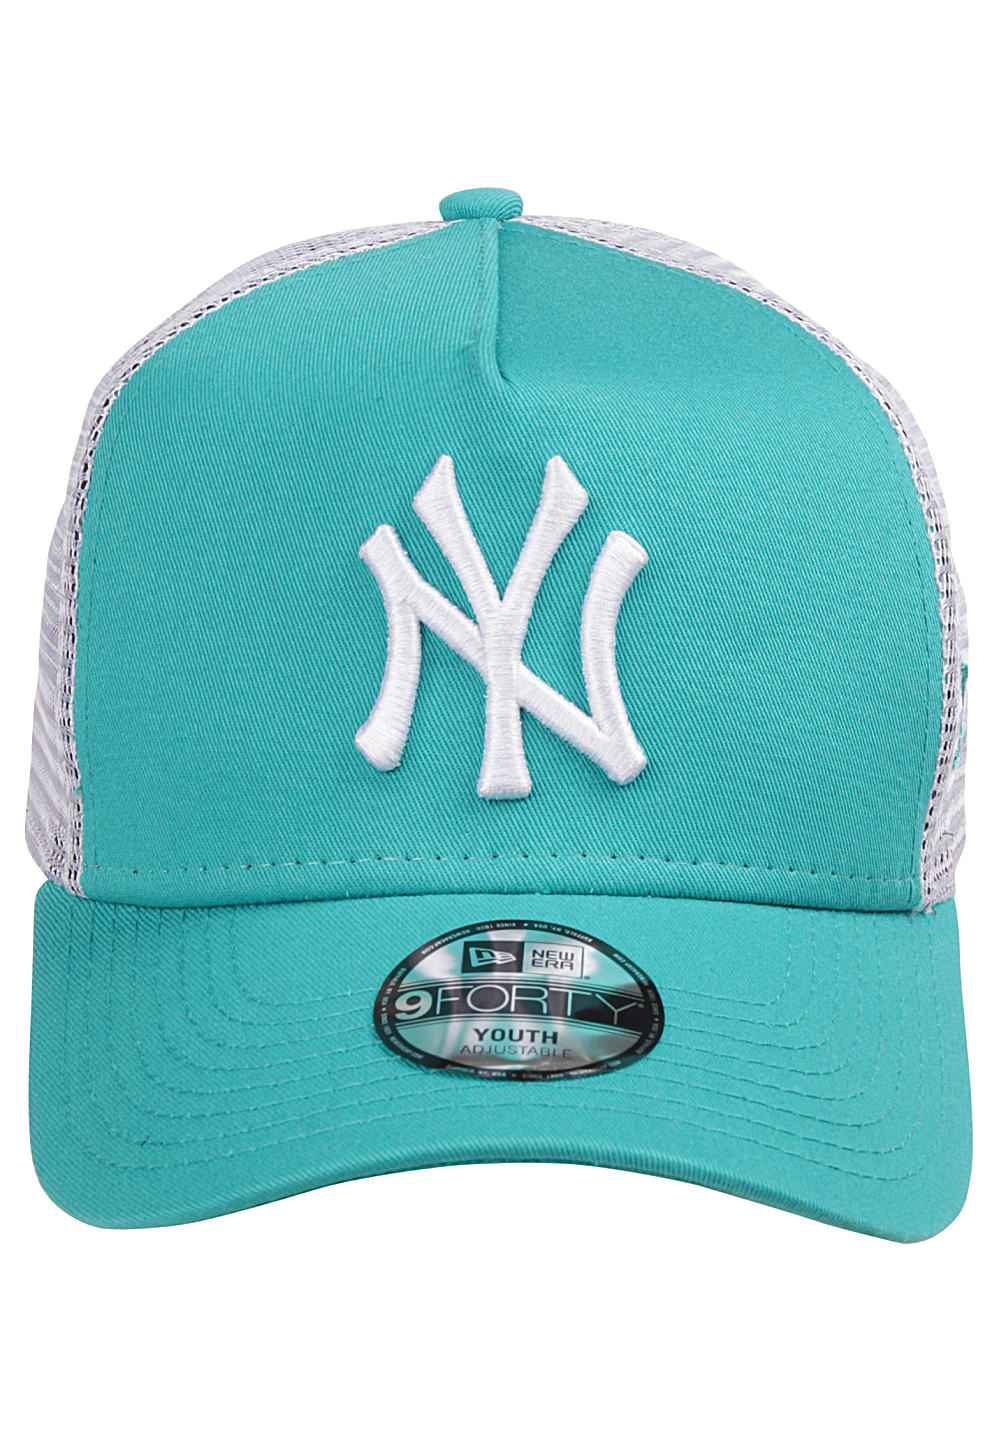 0fe2544e42cba4 Next. -10%. This product is currently out of stock. NEW Era. New York  Yankees - Trucker Cap